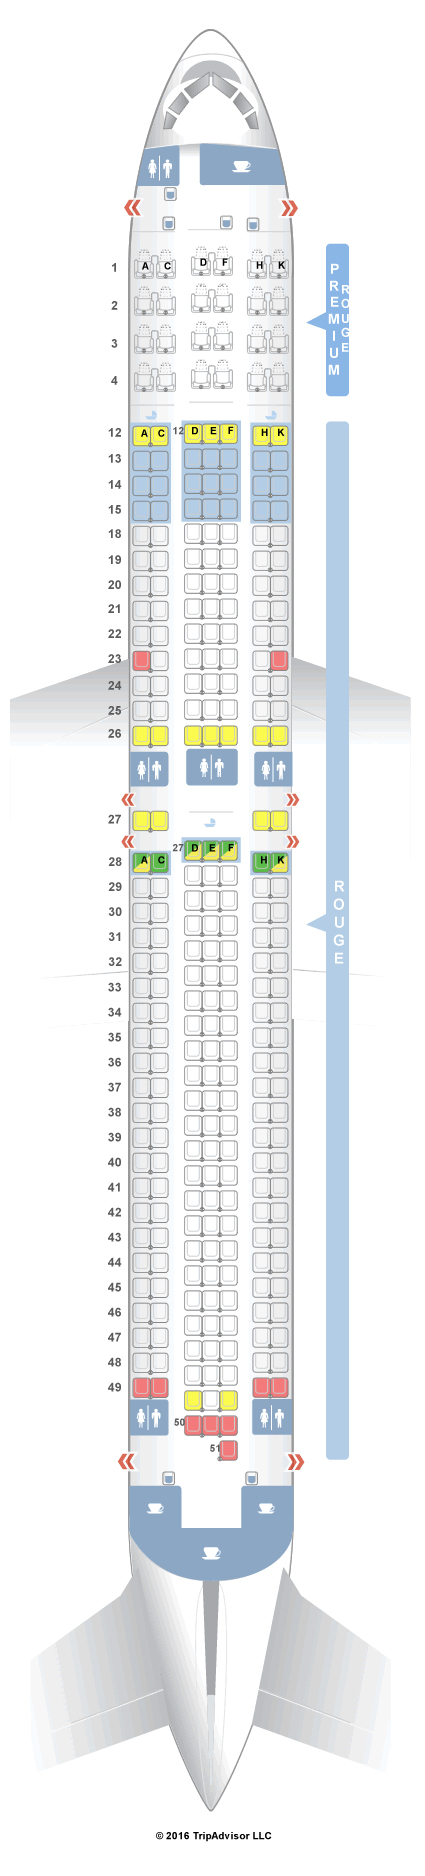 Air Canada 763 Seat Map SeatGuru Seat Map Air Canada Boeing 767 300ER (763) rouge V2